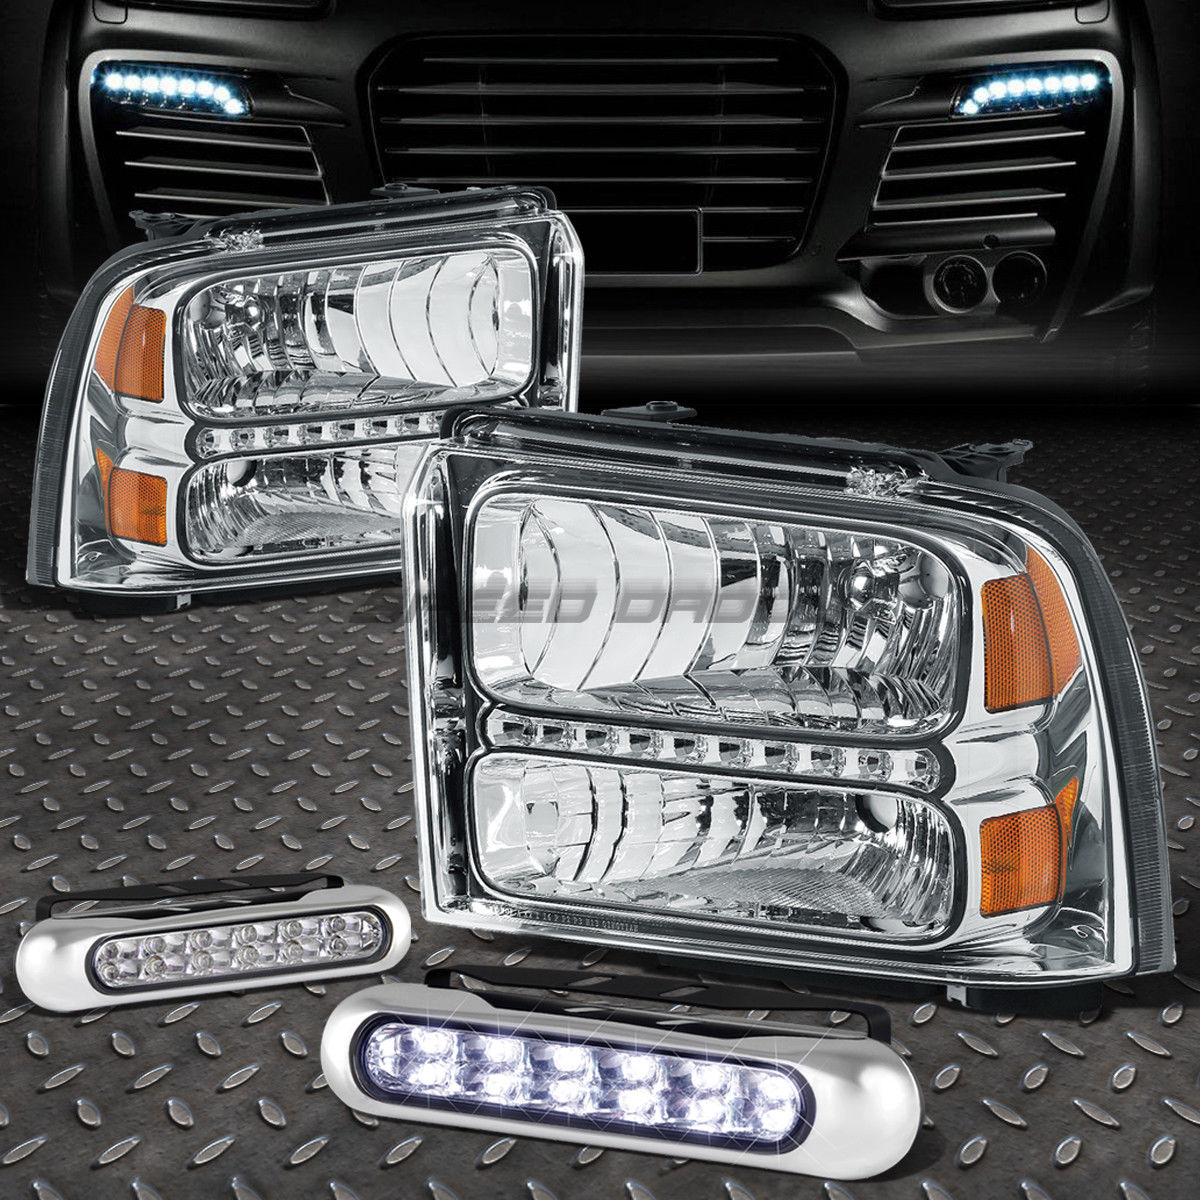 フォグライト CHROME HOUSING LED HEADLIGHT+12 LED GRILL FOG LIGHT FOR 05-07 F250/F350/F450 CHROME HOUSING LEDヘッドライト+ 05グリルフォグライト05-07 F250 / F350 / F450用